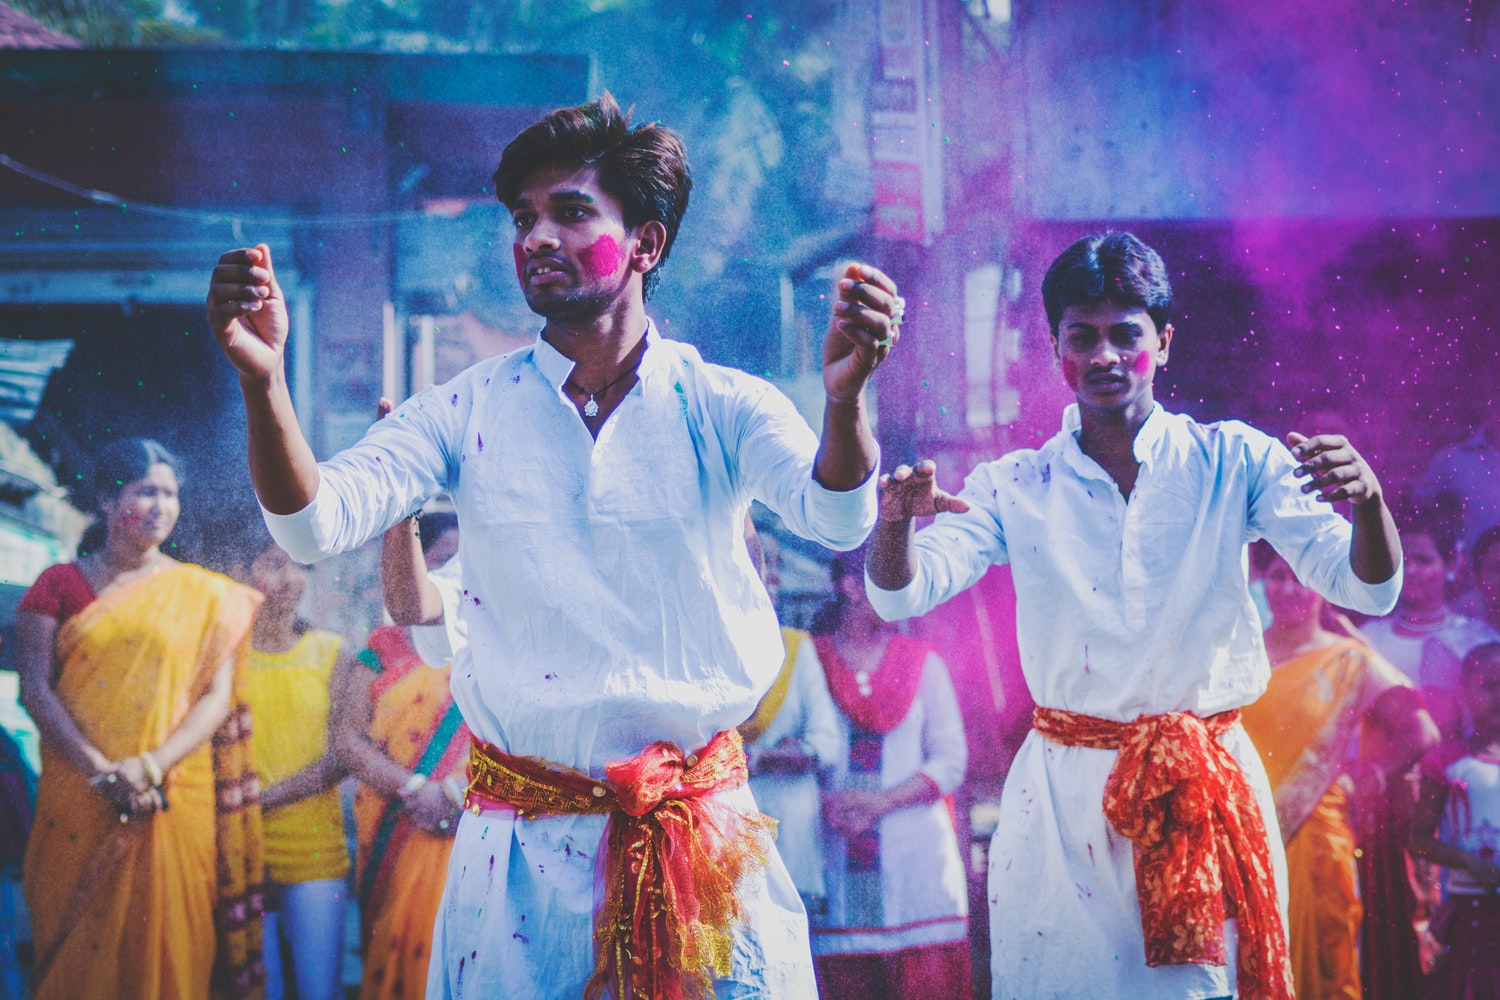 Two men dancing while covered in colors for the Holi festival.